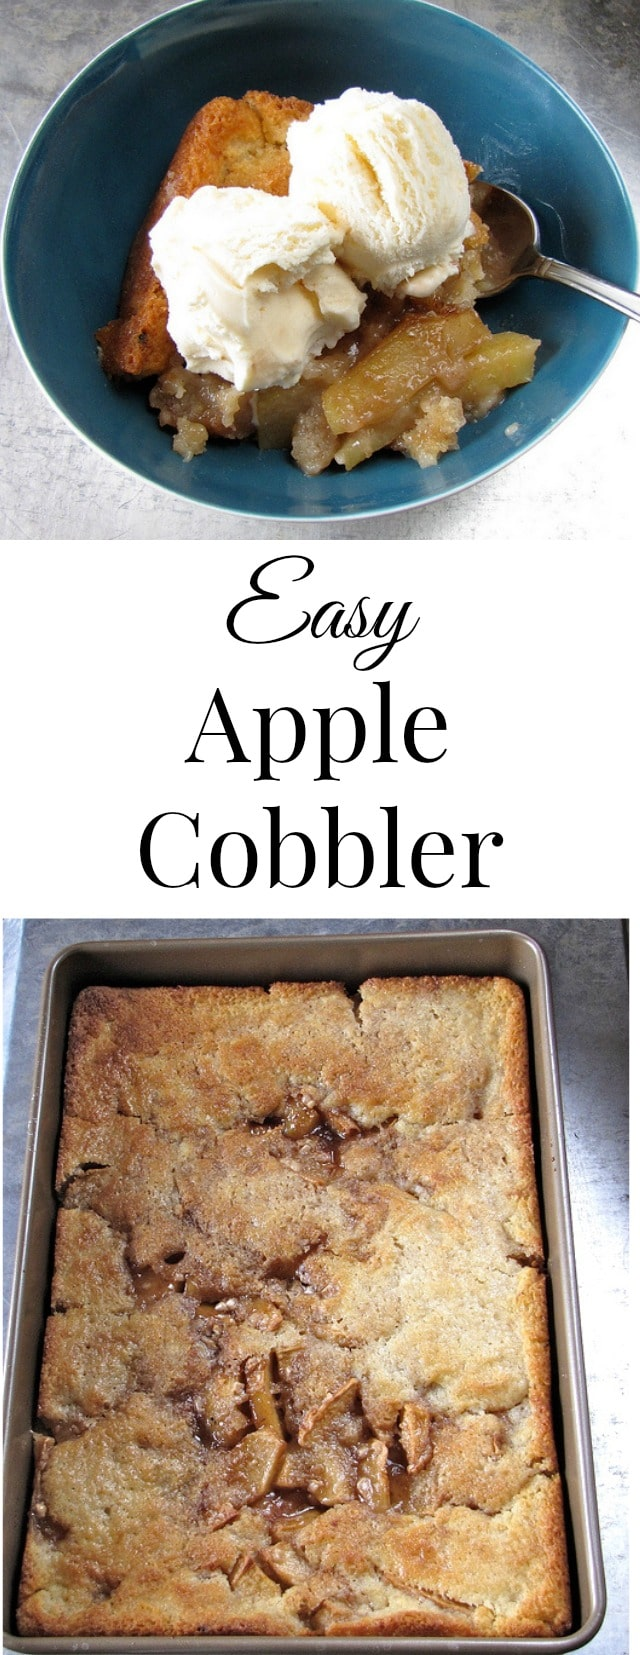 Easy Apple Cobbler from missinthekitchen.com